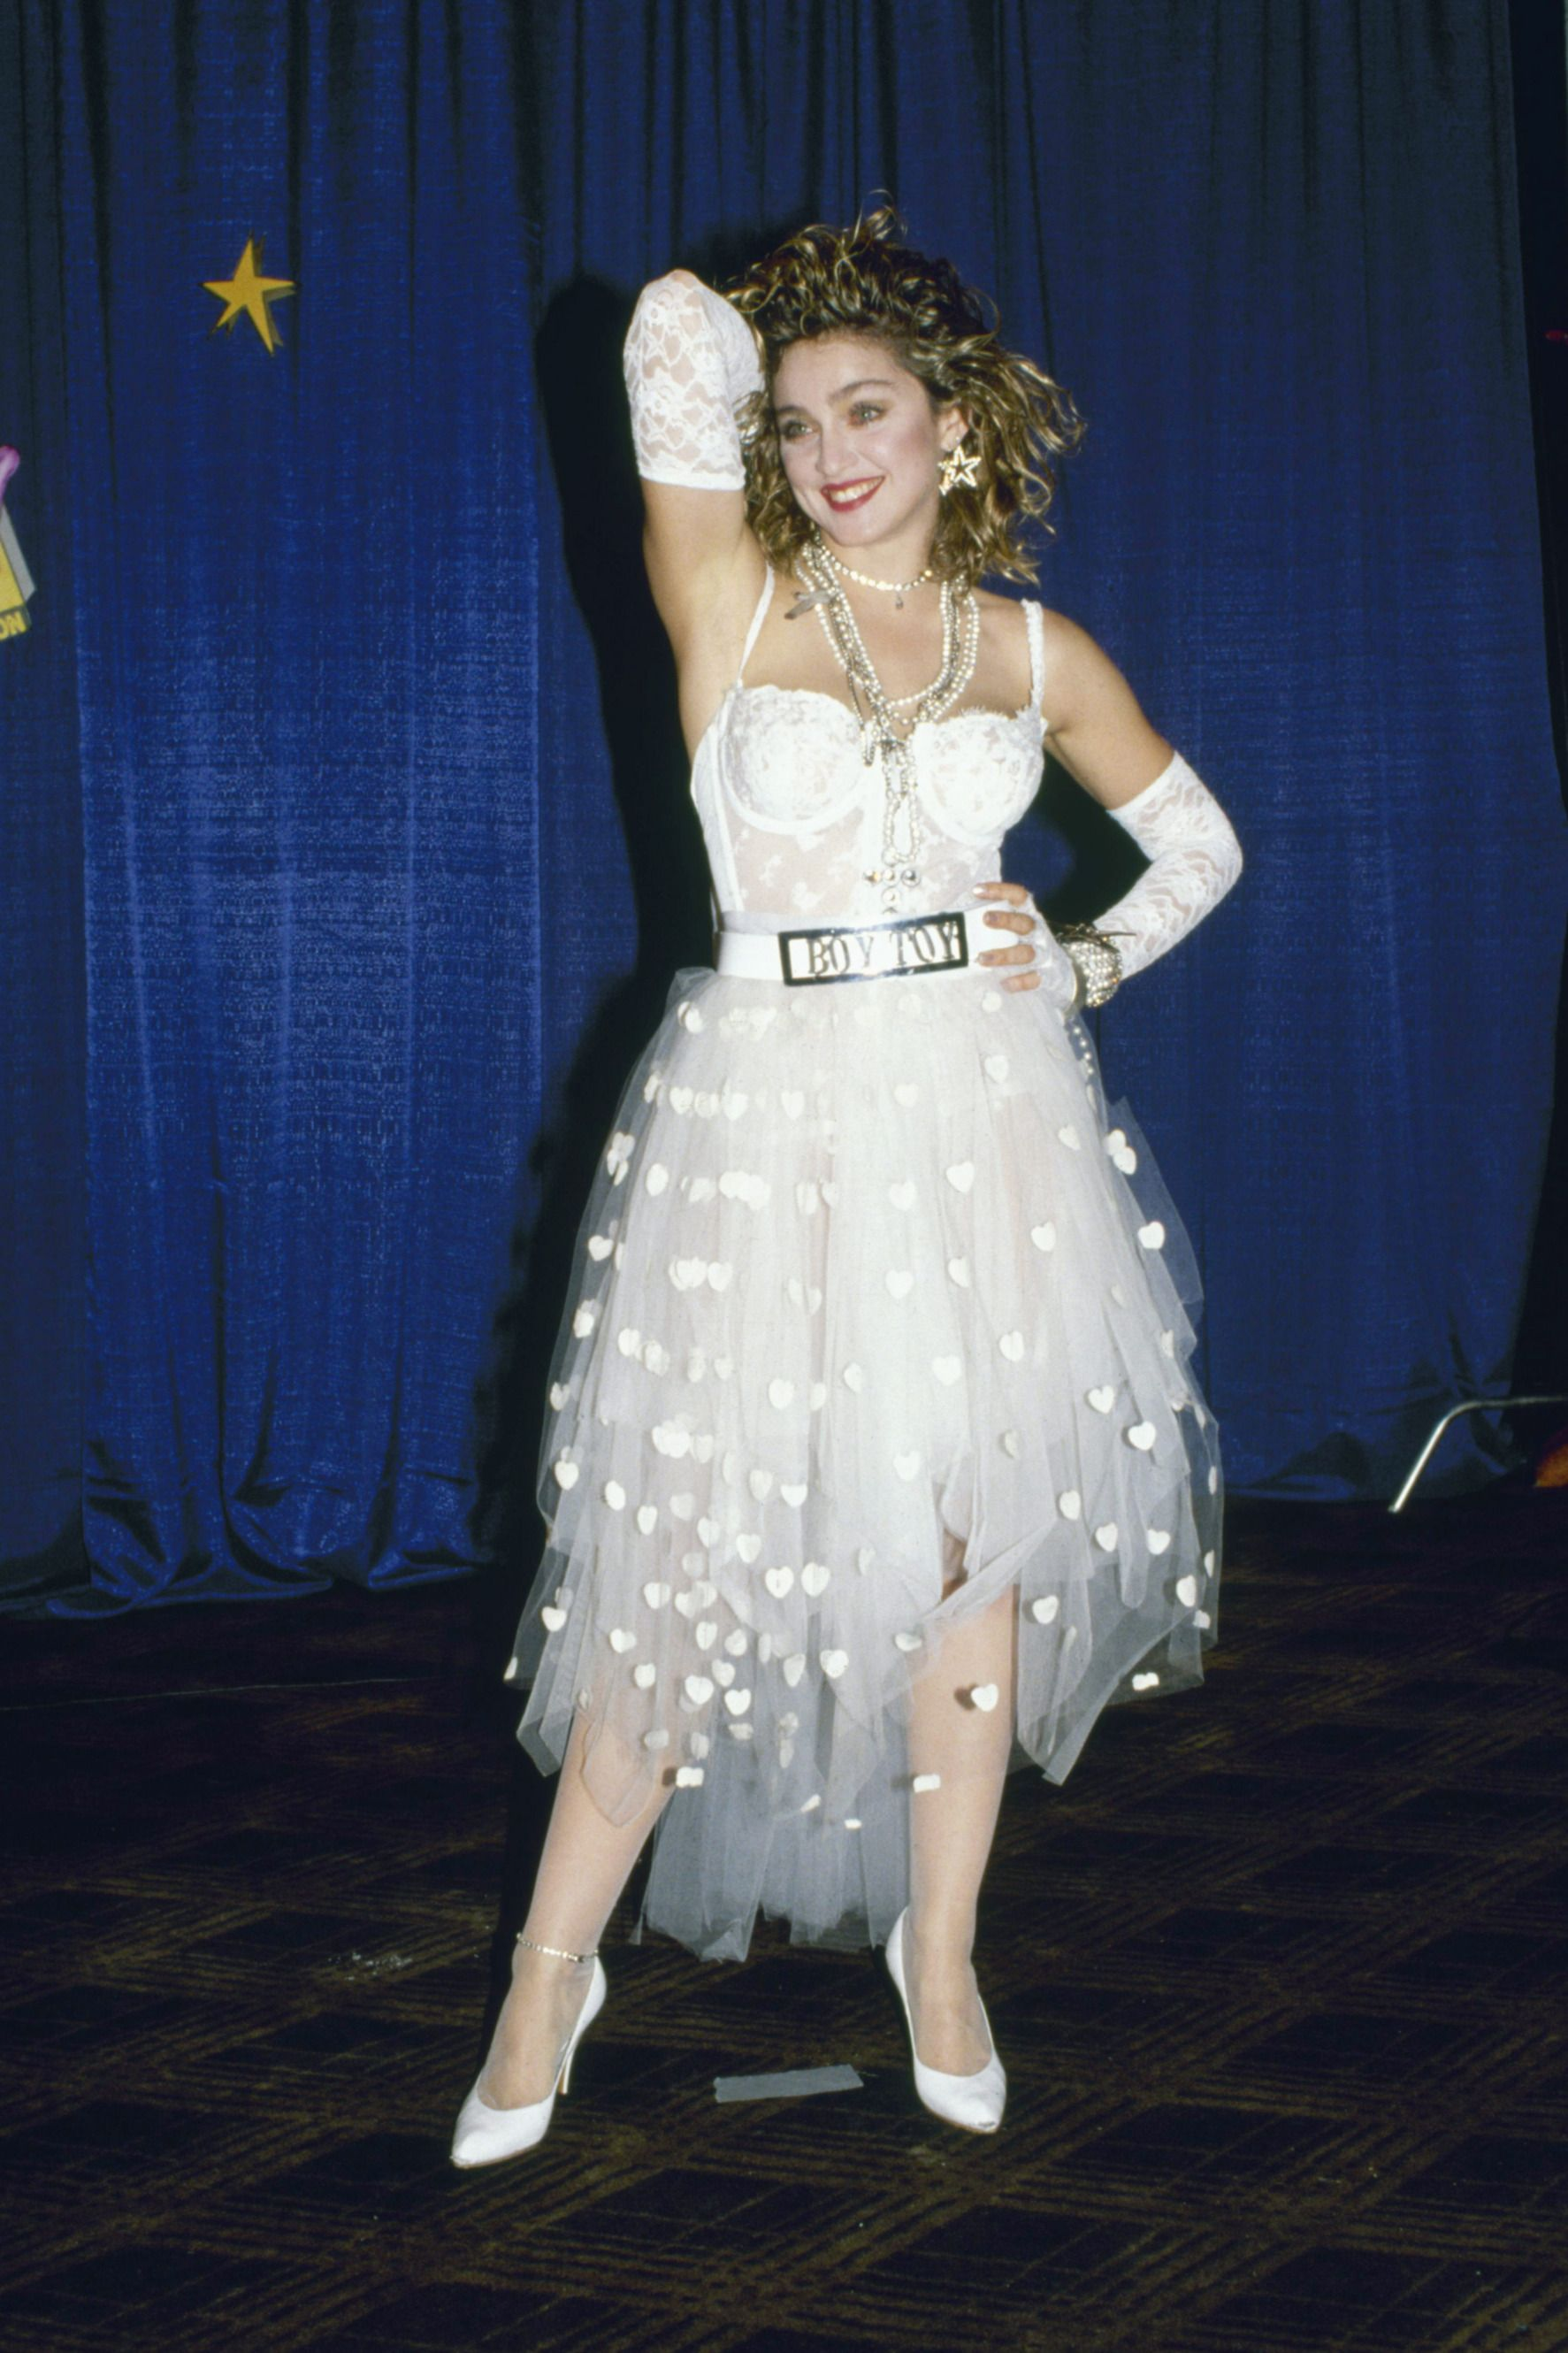 Foam party guerlain and madonna wow girls was and